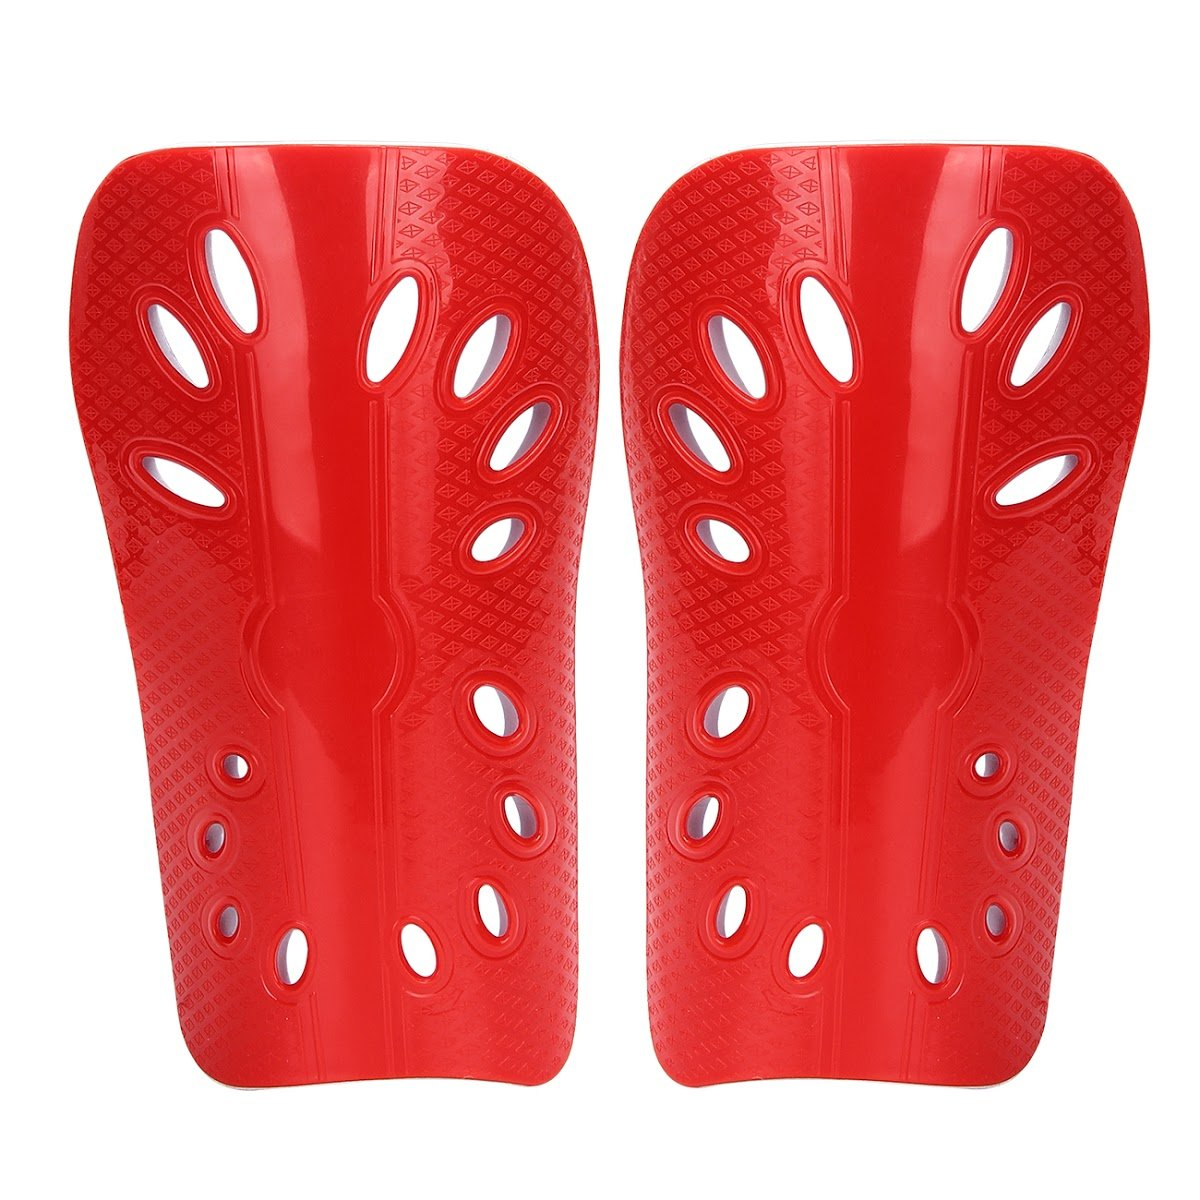 sinolofty Soccer Shin Guard LED Calf Proctive FootballギアパッドArmorプロテクター子供大人 B07BN8H4FMレッド Adult